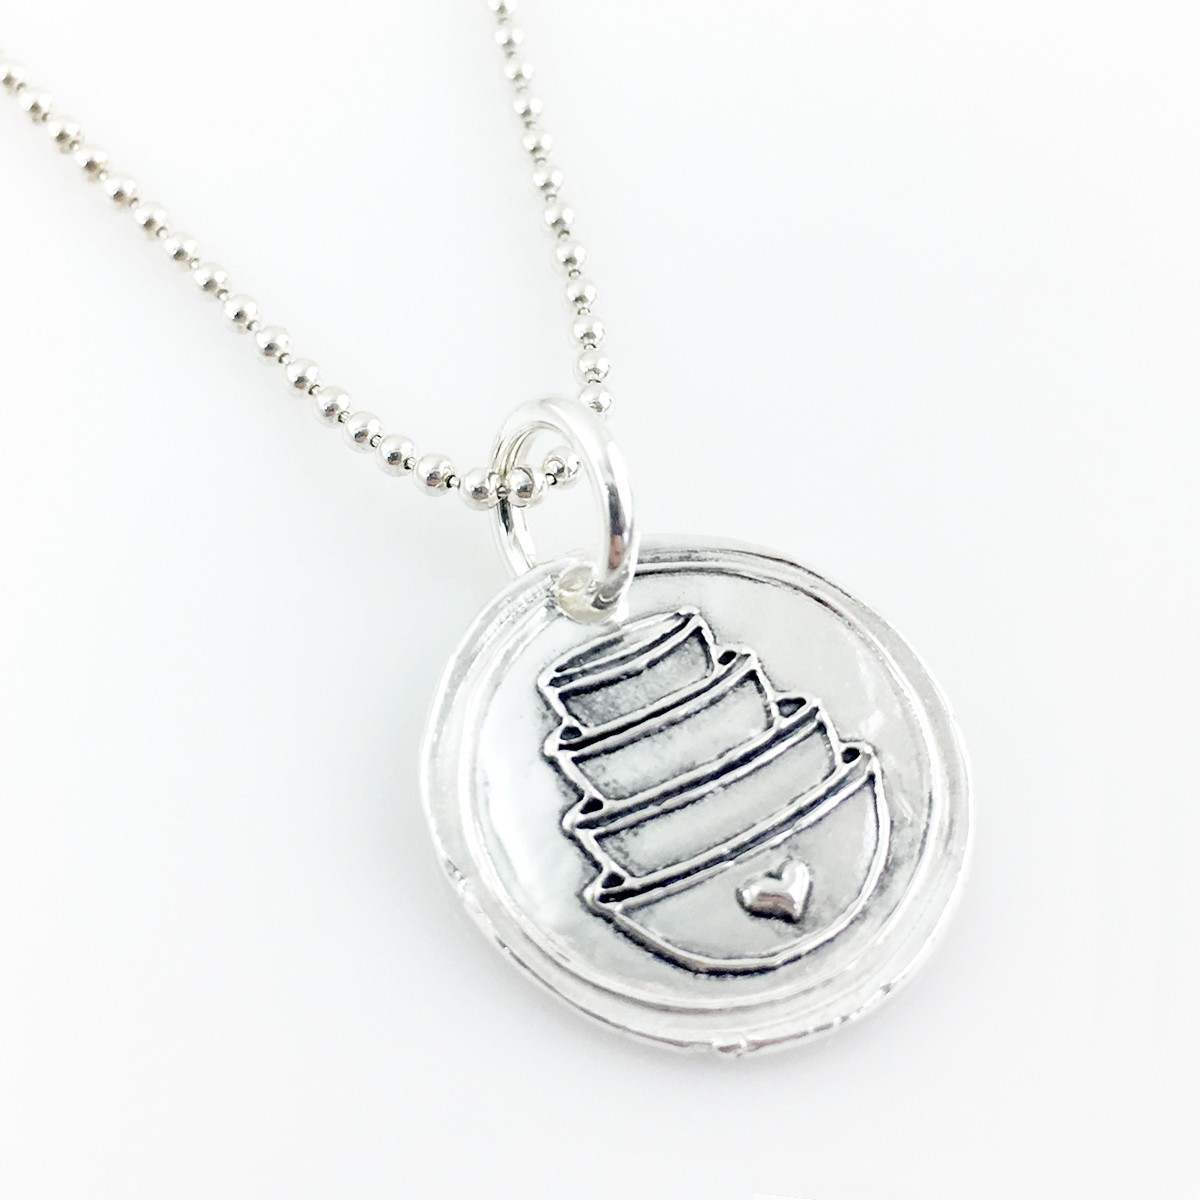 Pyrex Love Wax Seal Inspired Necklace